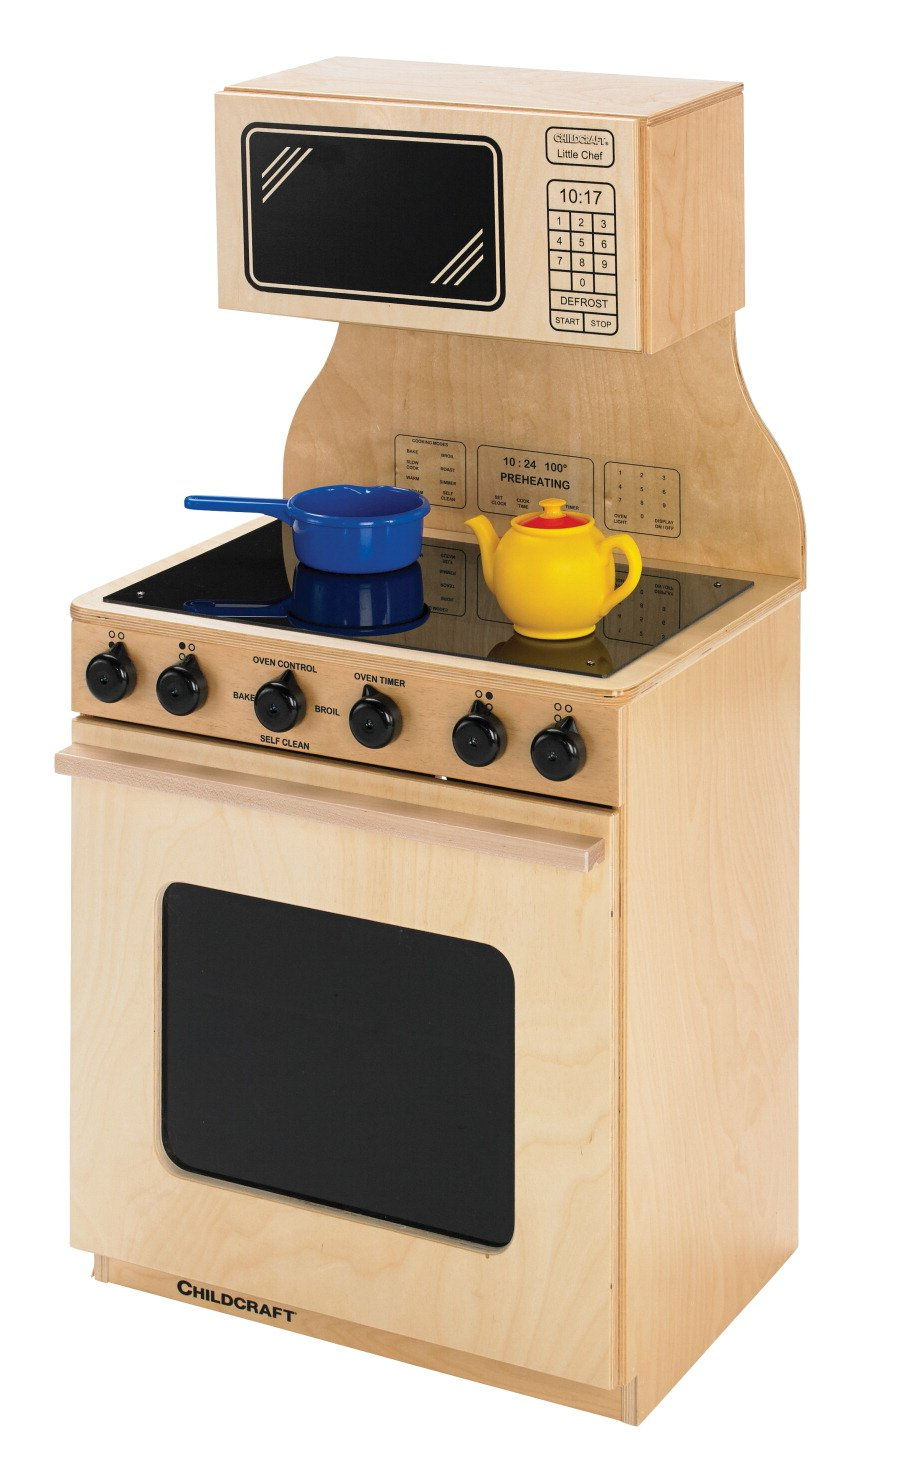 Childcraft 1491224 Modern Kitchen Stove and Microwave, 20-3/4 x 15-5/8 x 42 Inches Height,15.63 Inches Width,20.75 Inches Length,Natural Wood